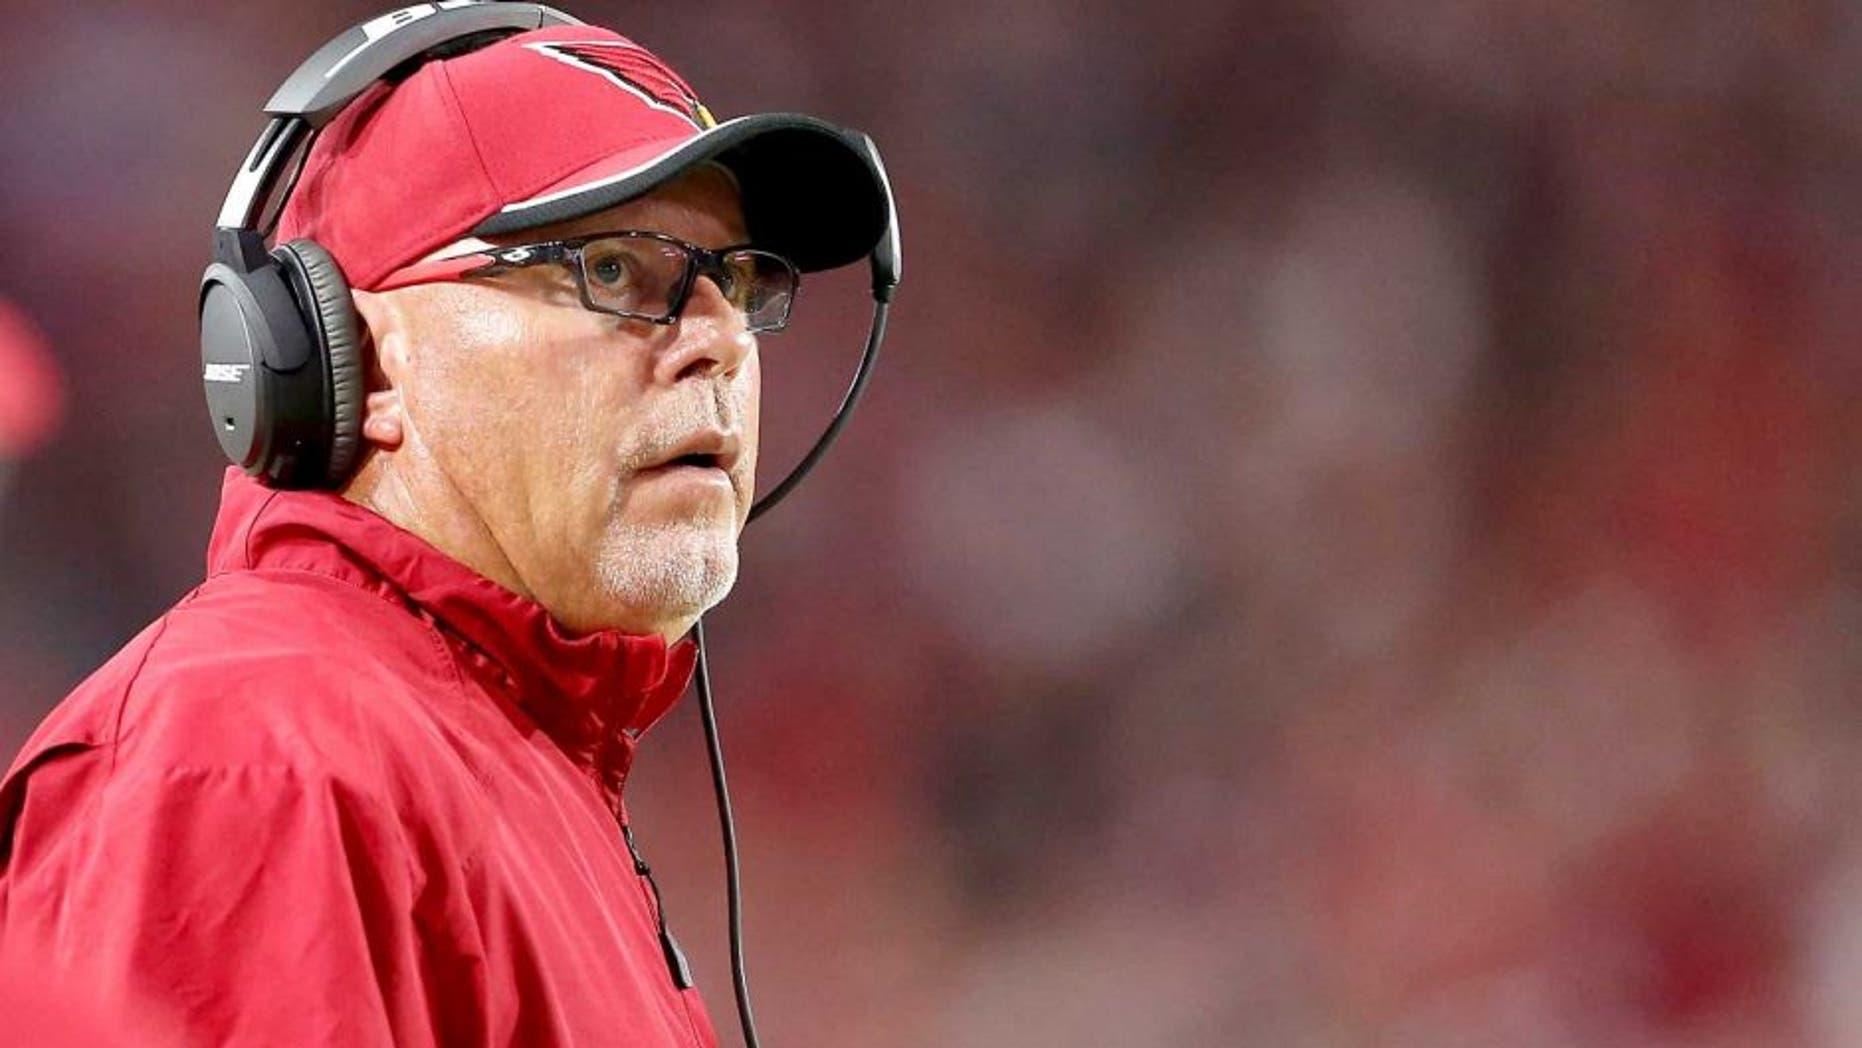 GLENDALE, AZ - DECEMBER 07: Head coach Bruce Arians of the Arizona Cardinals looks up to the video board during the NFL game against the Kansas City Chiefs at the University of Phoenix Stadium on December 7, 2014 in Glendale, Arizona. The Cardinals defeated the Chiefs 17-14. (Photo by Christian Petersen/Getty Images)